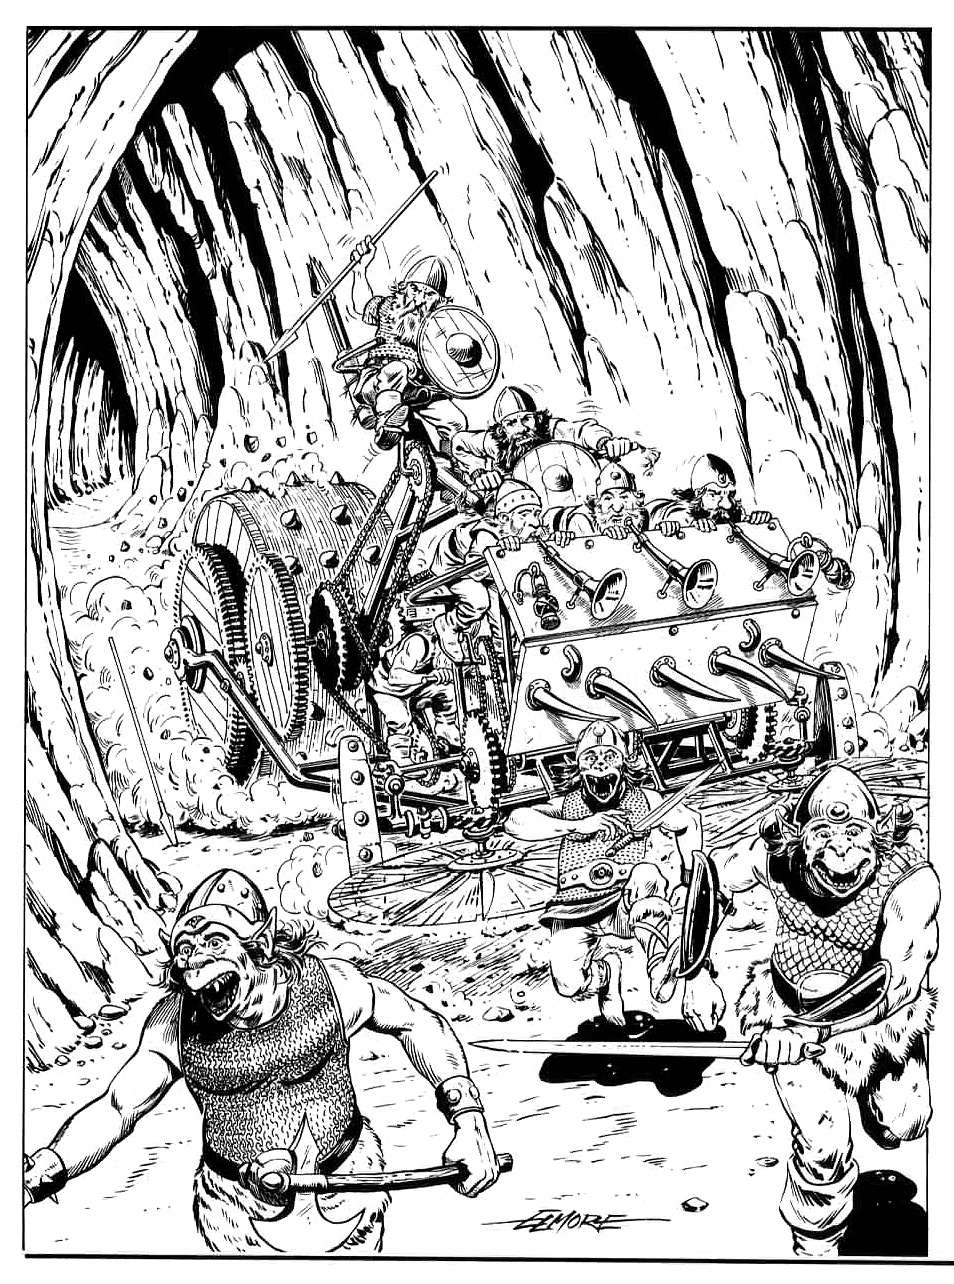 orcs dwarf dwarves Orchi in fuga davanti alle diavolerie naniche - by Larry Elmore TSR - The Complete Book of Dwarves (1991-10) © Wizards of the Coast & Hasbro